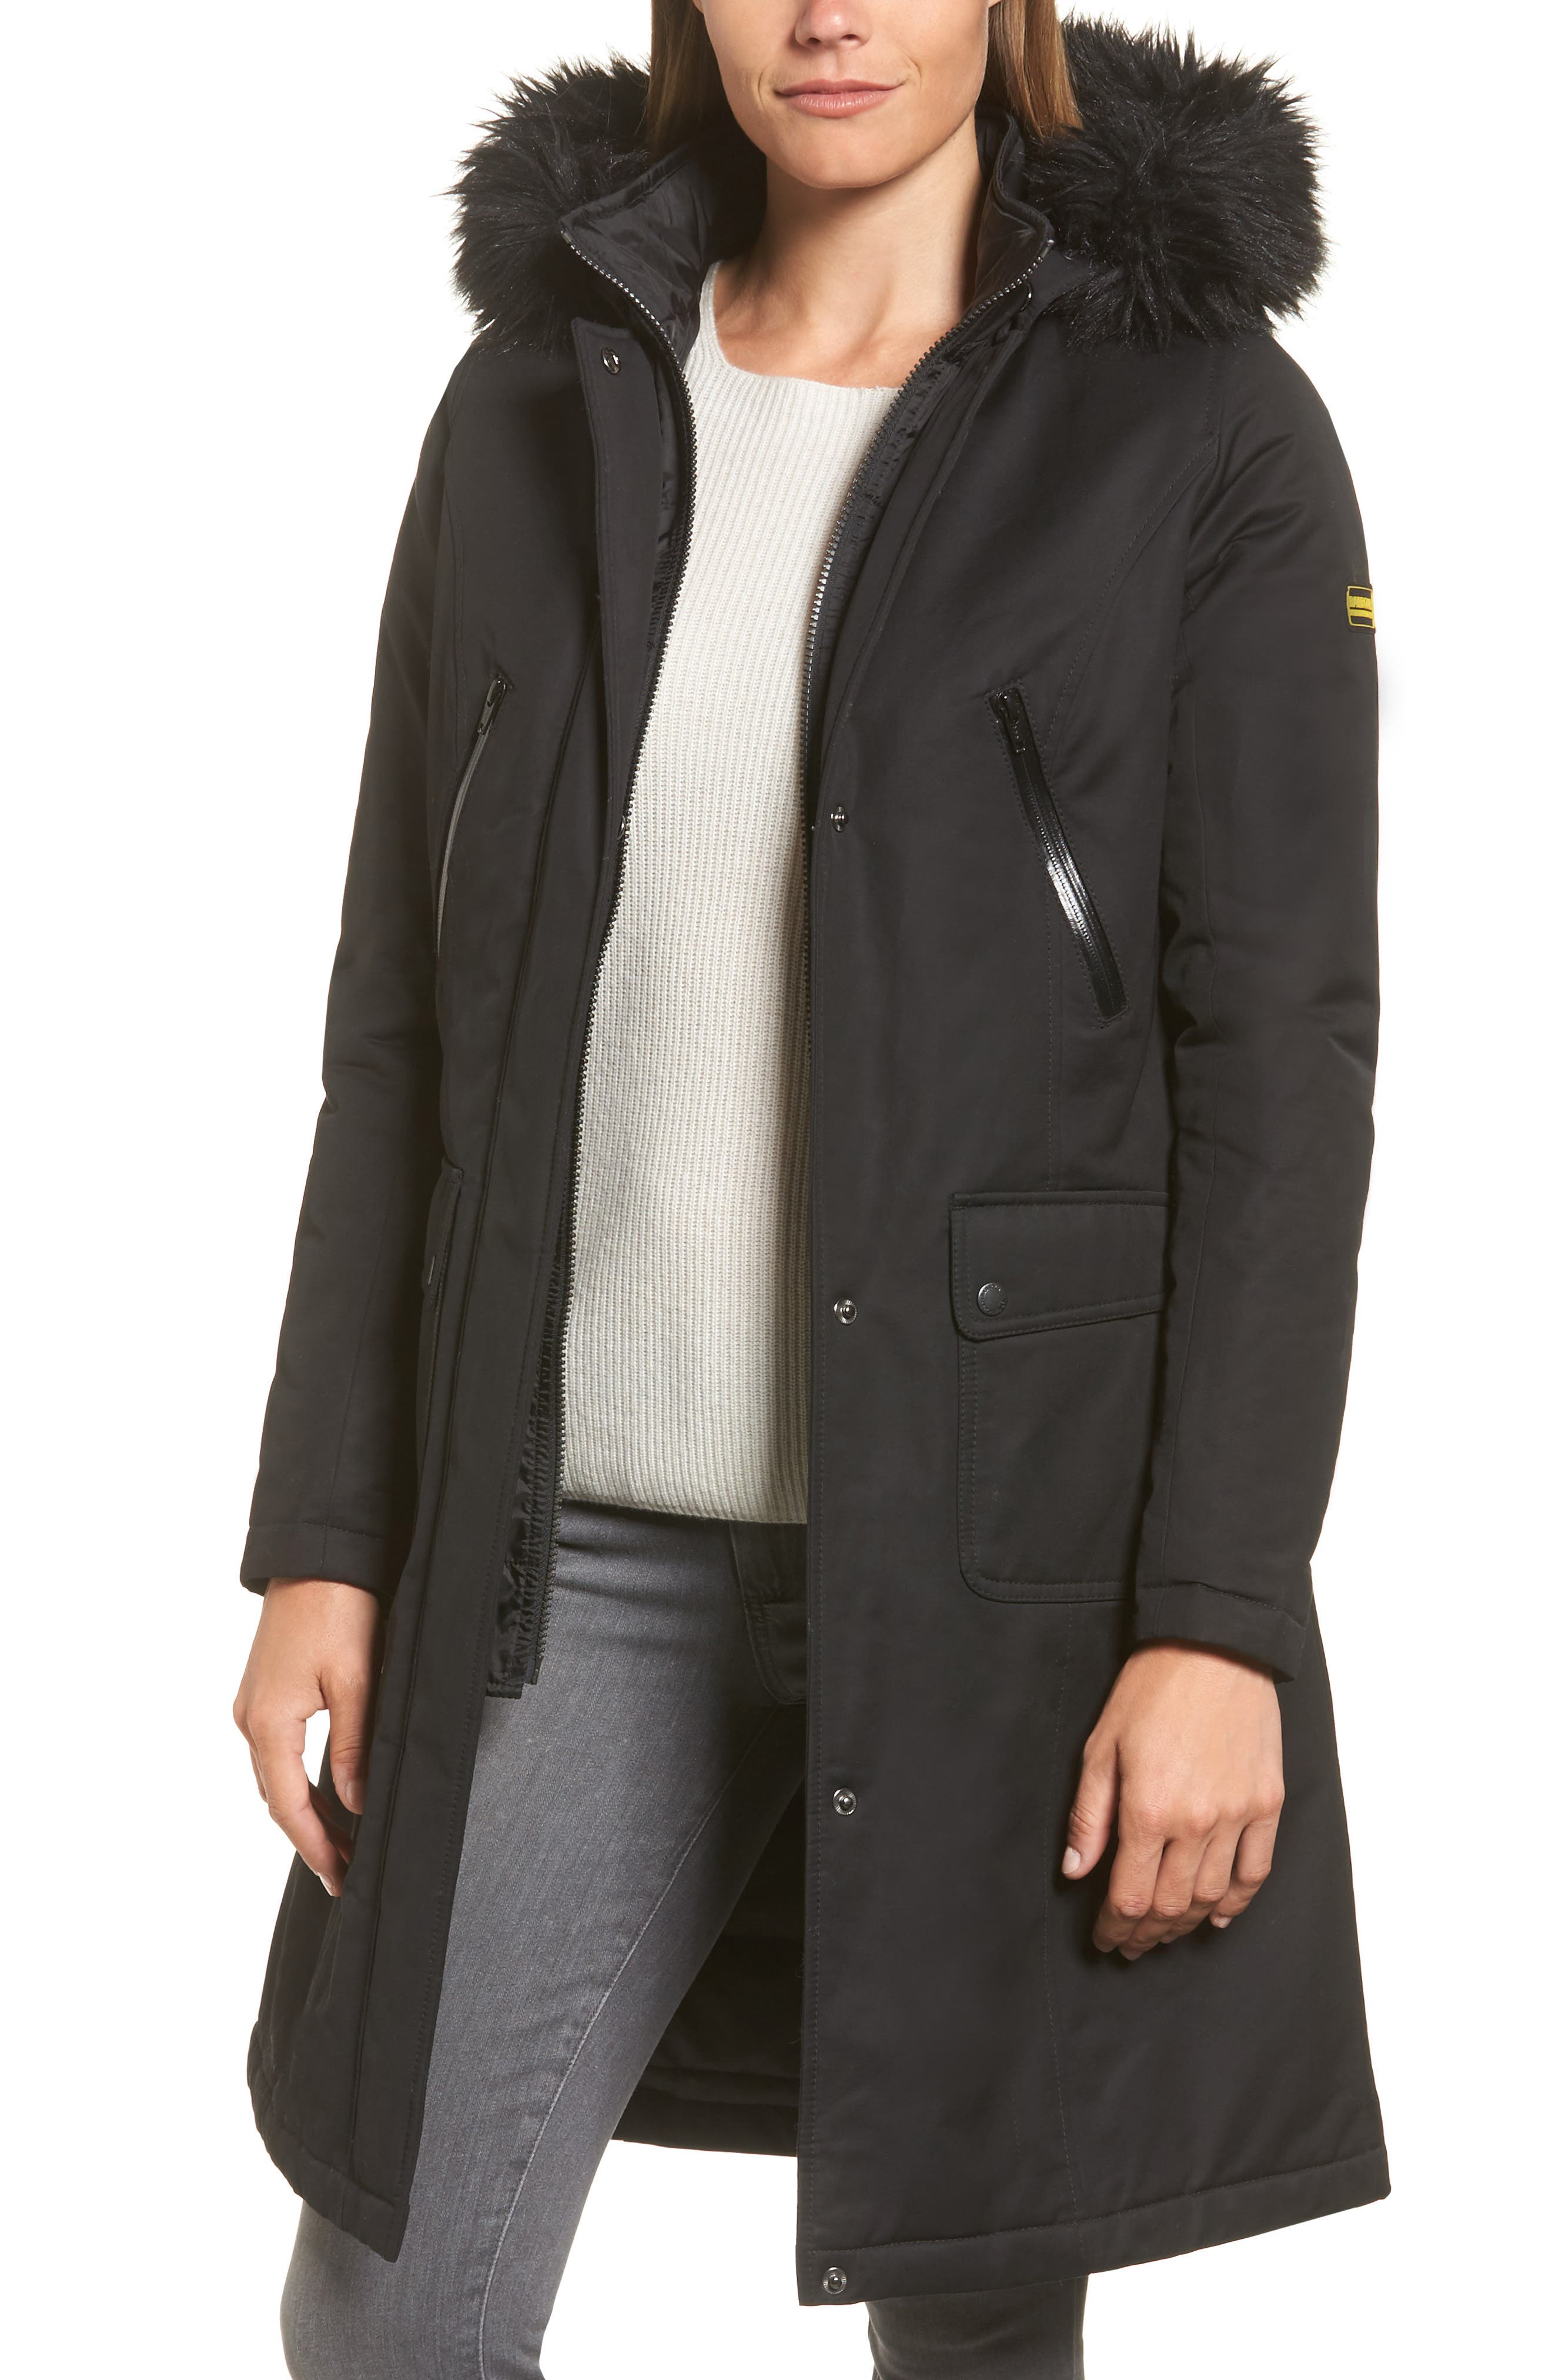 Main Image - Barbour Mondello Hooded Water Resistant Jacket with Faux Fur Trim